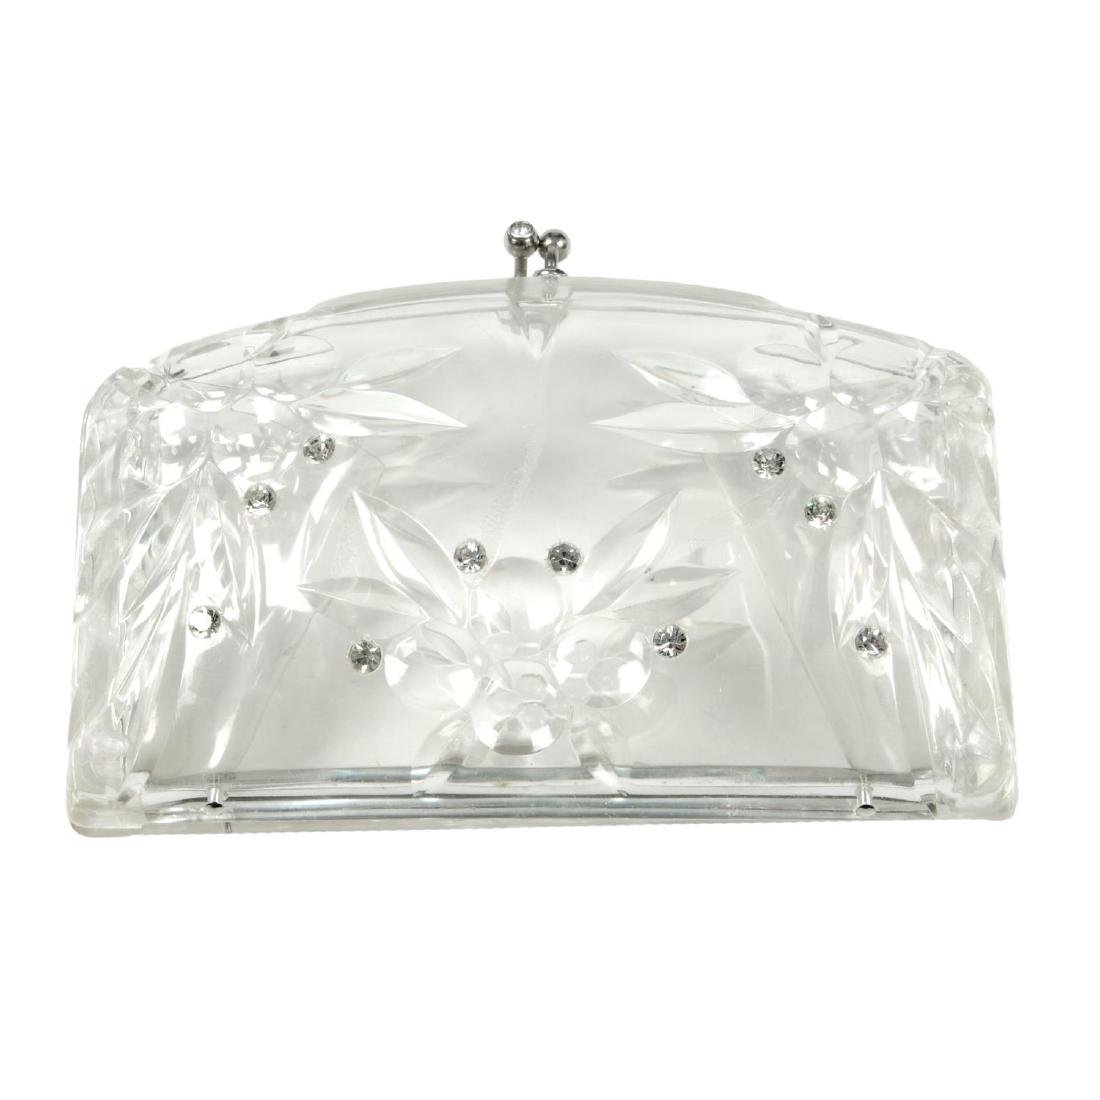 A clear lucite clutch handbag. Designed as a hinged